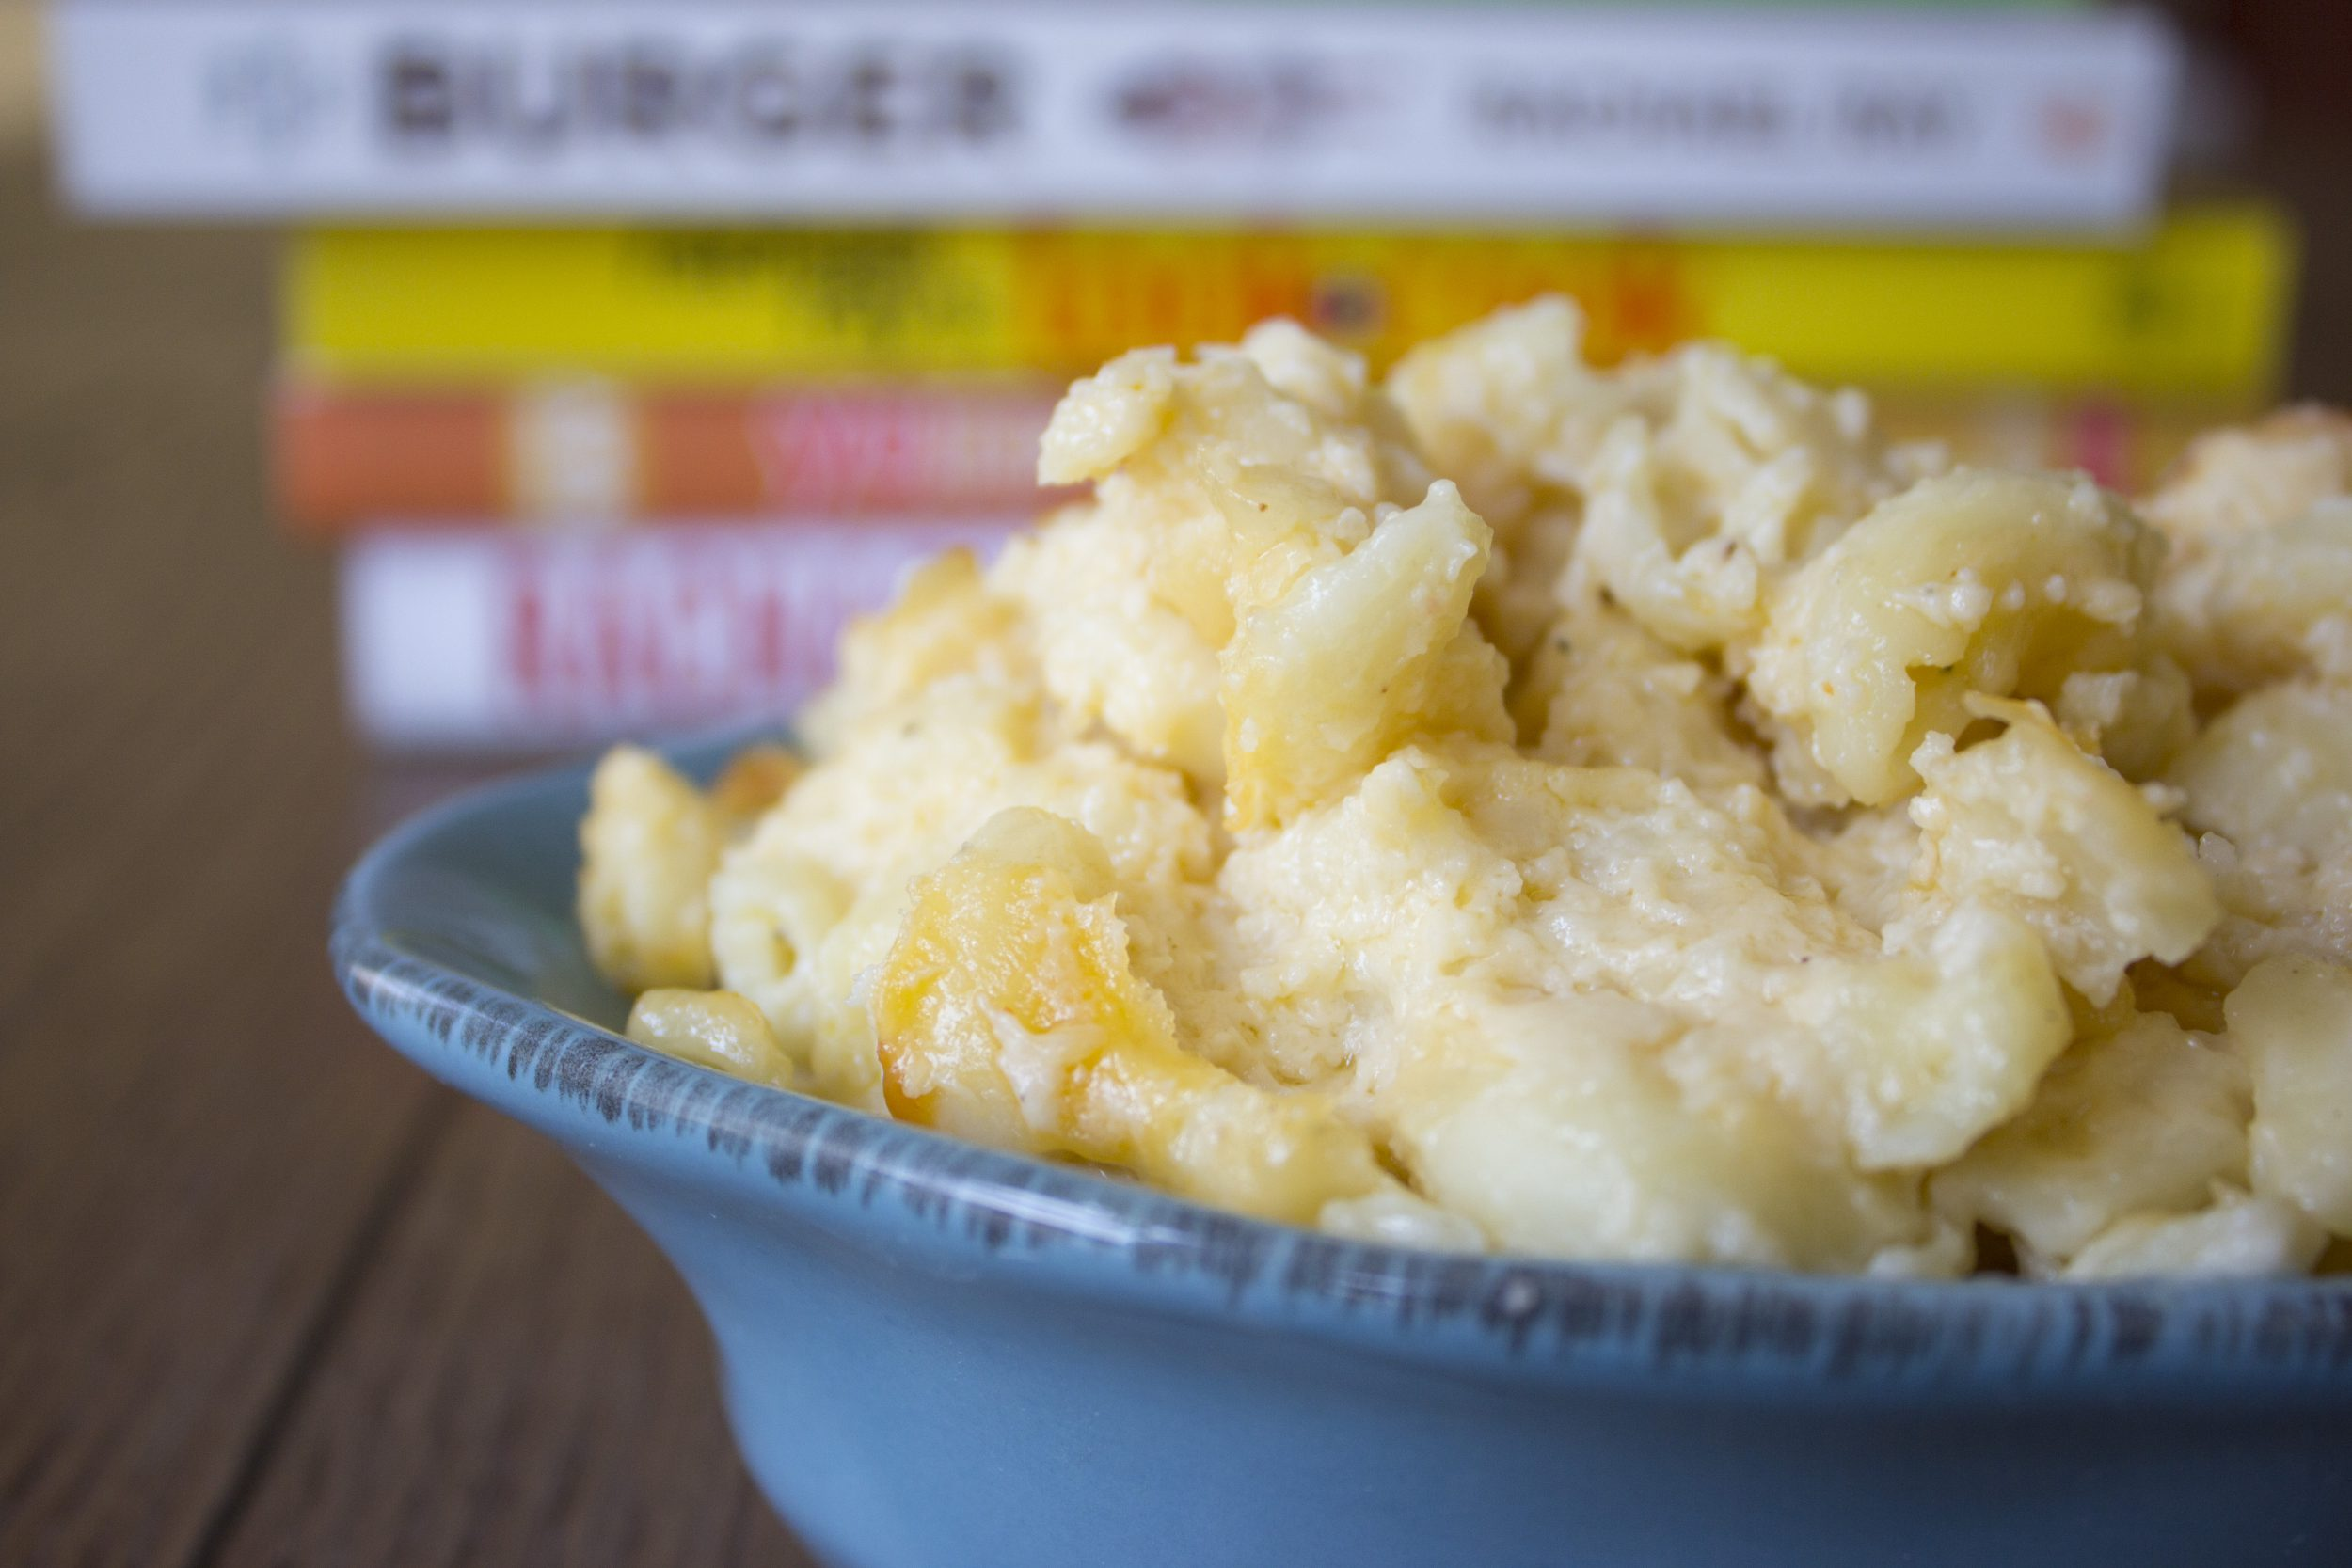 Too-Tasty-to-Be-Good-for-You Cauliflower Mac 'n Cheese